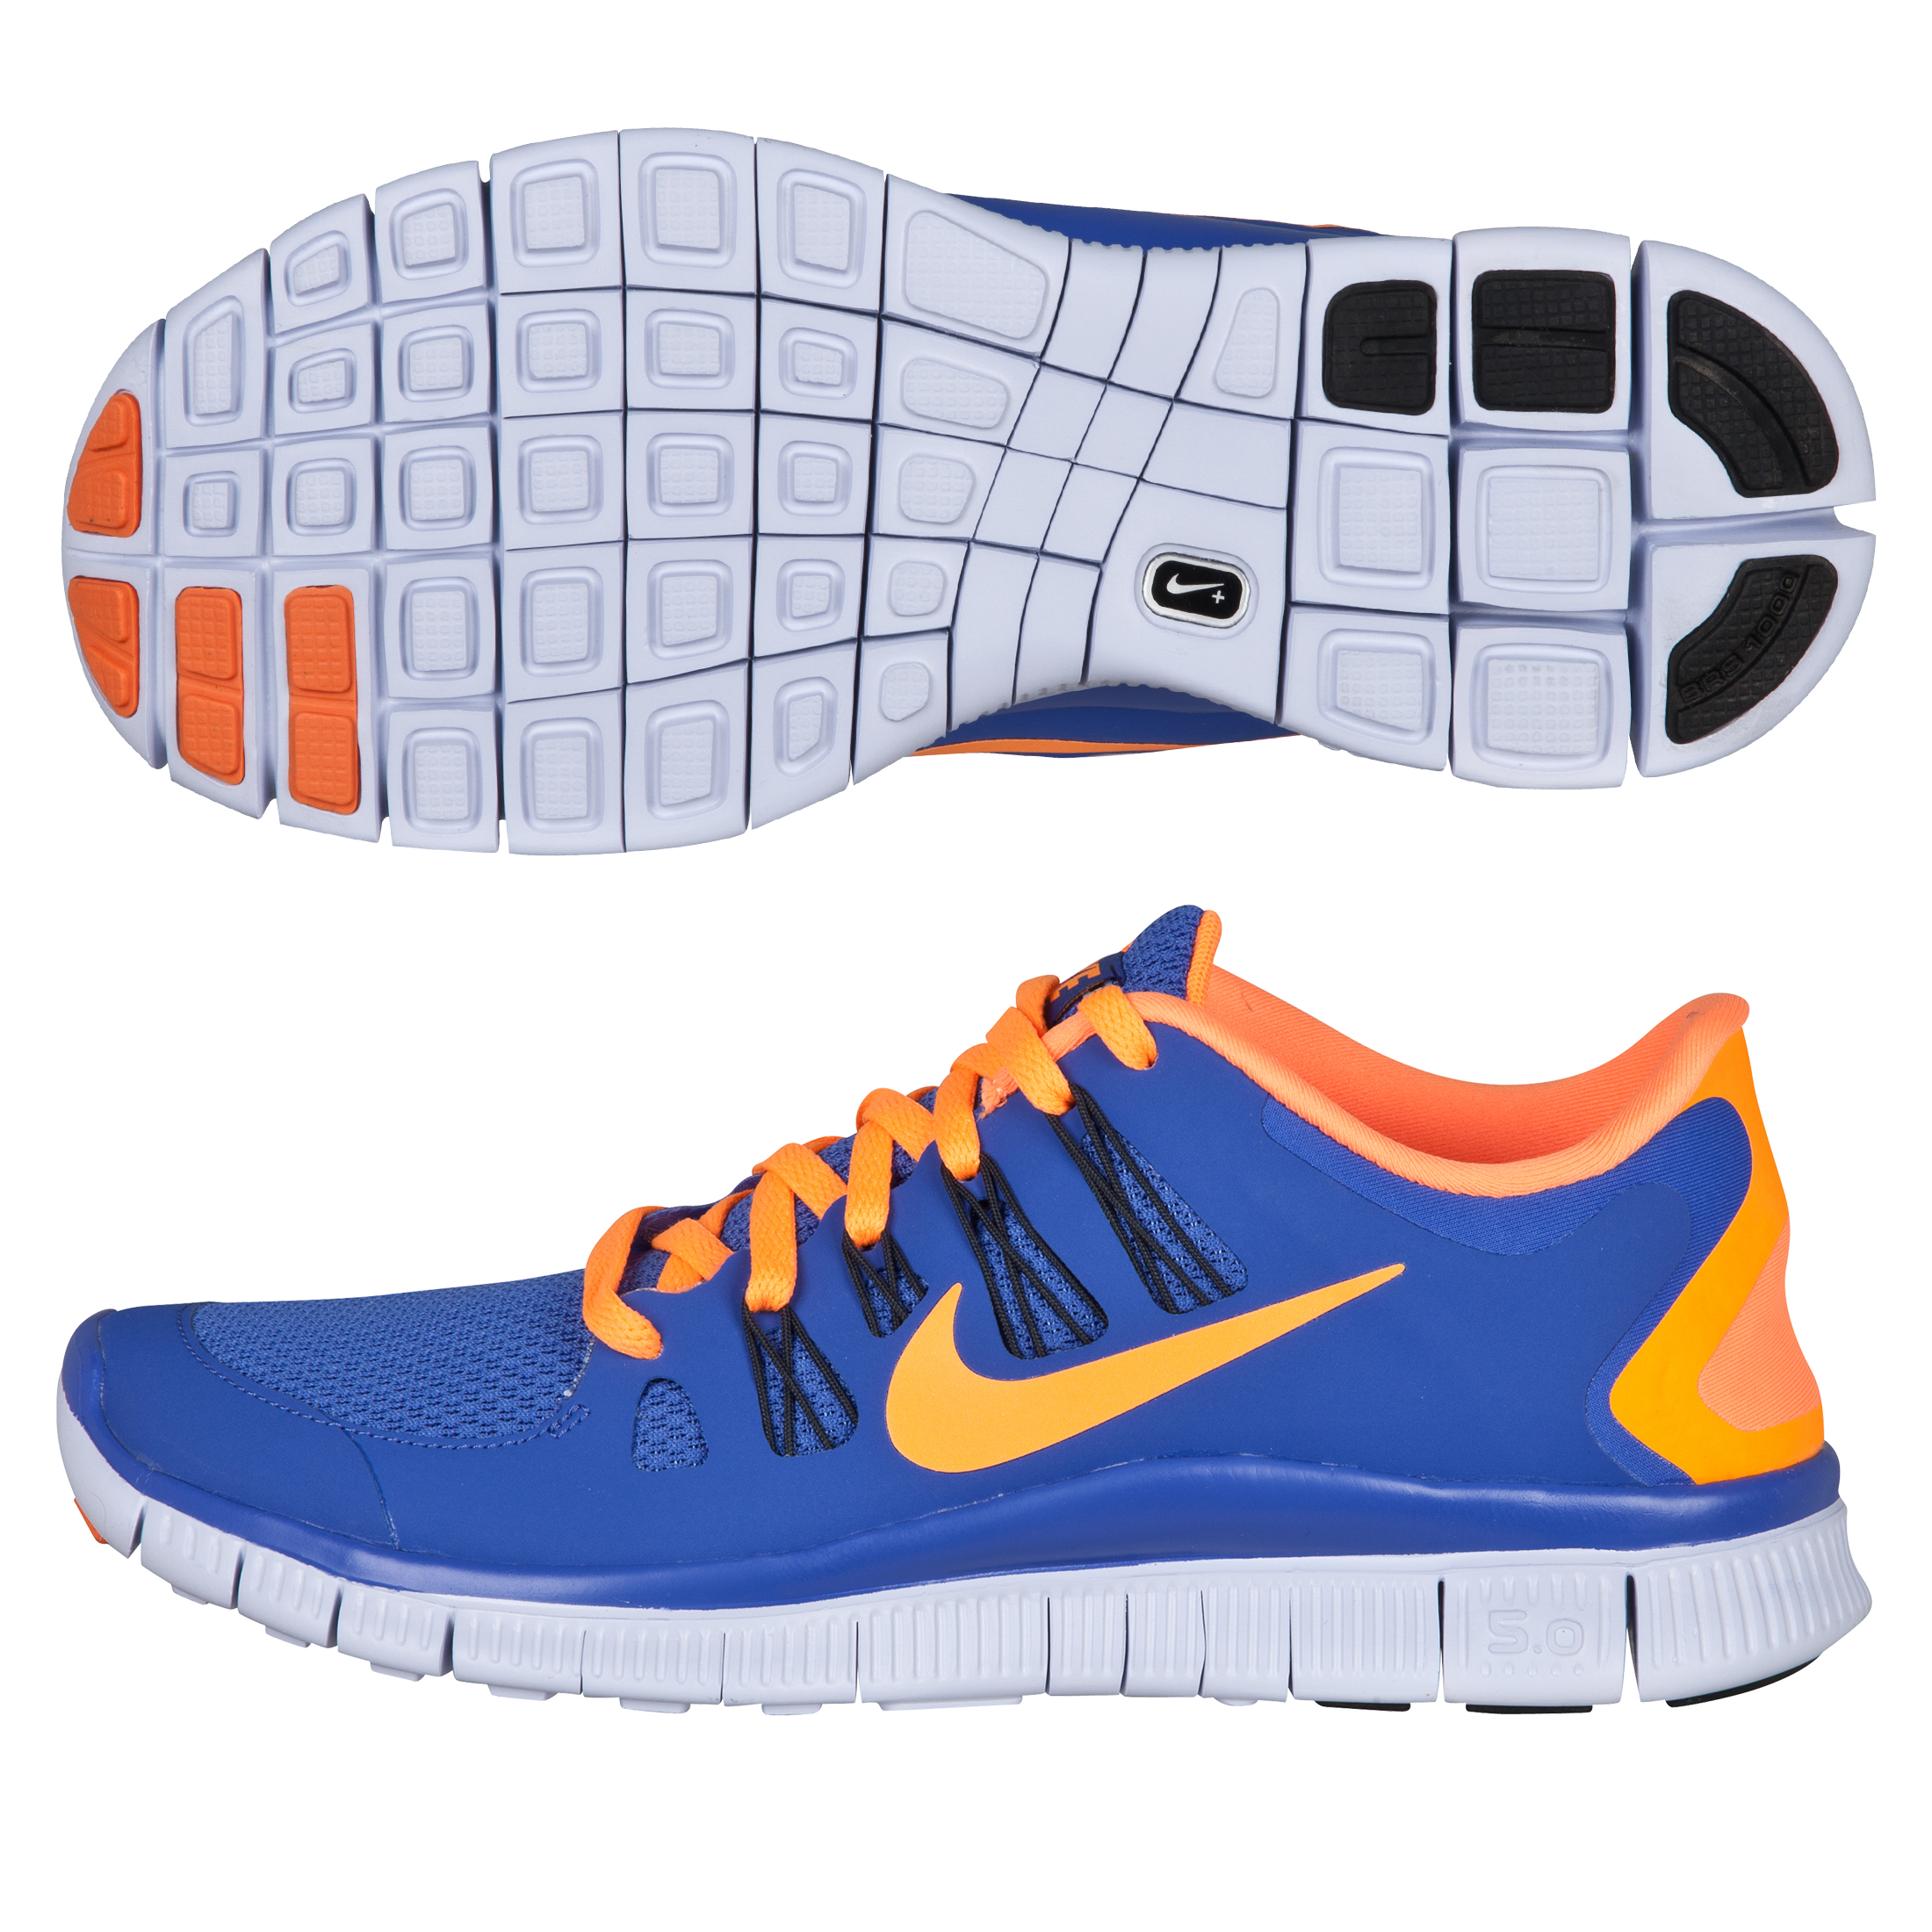 Nike Free 5.0+ Trainer - Purple/Bright Citrus - Womens